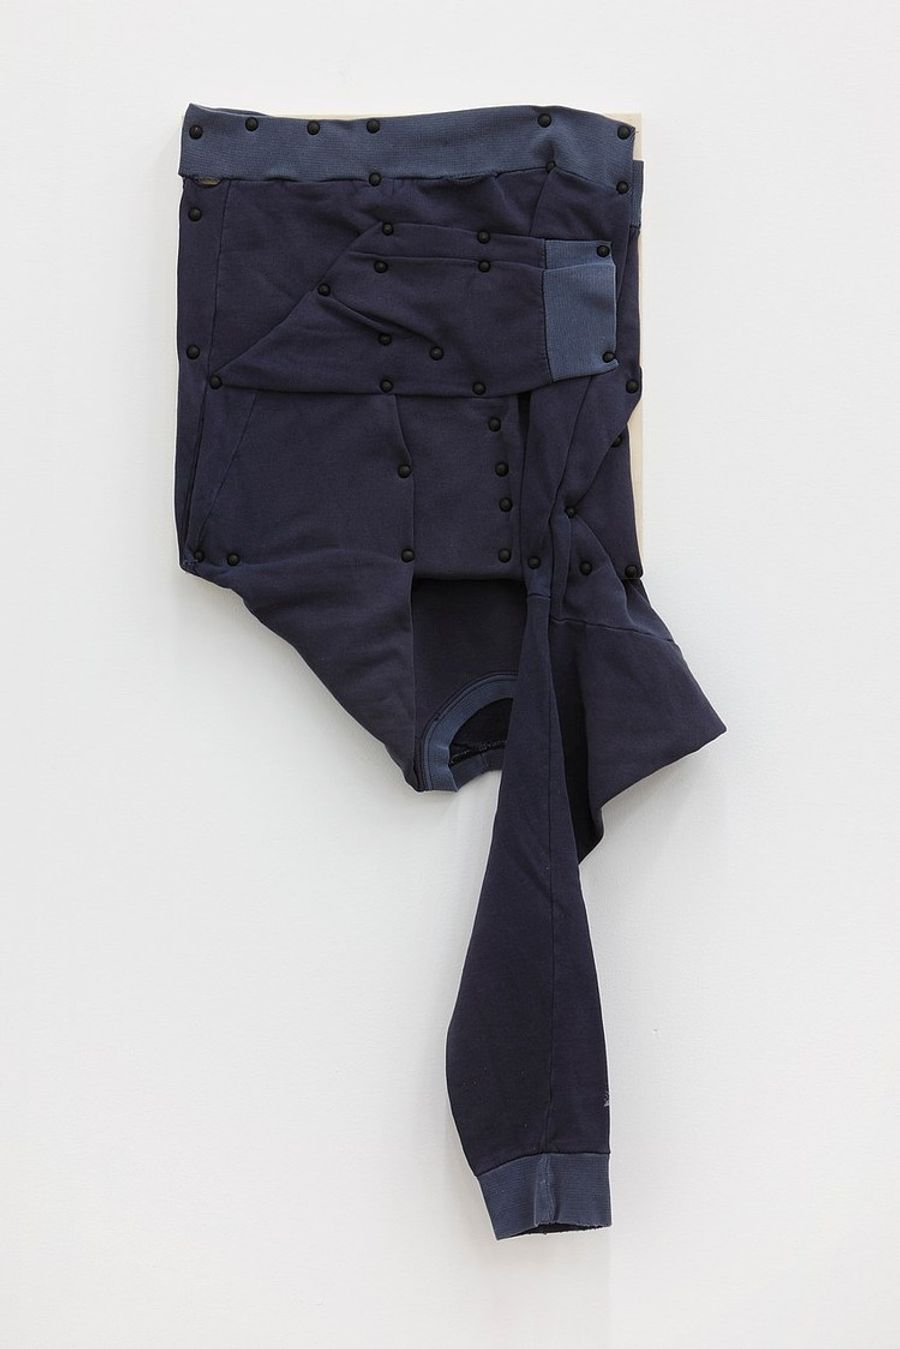 Tom Burr, his personal effects (long sleeve, blue), 2012. Men's sweatshirt, upholstery tacks and plywood, 37 x 15 in (94 x 38.1 cm).